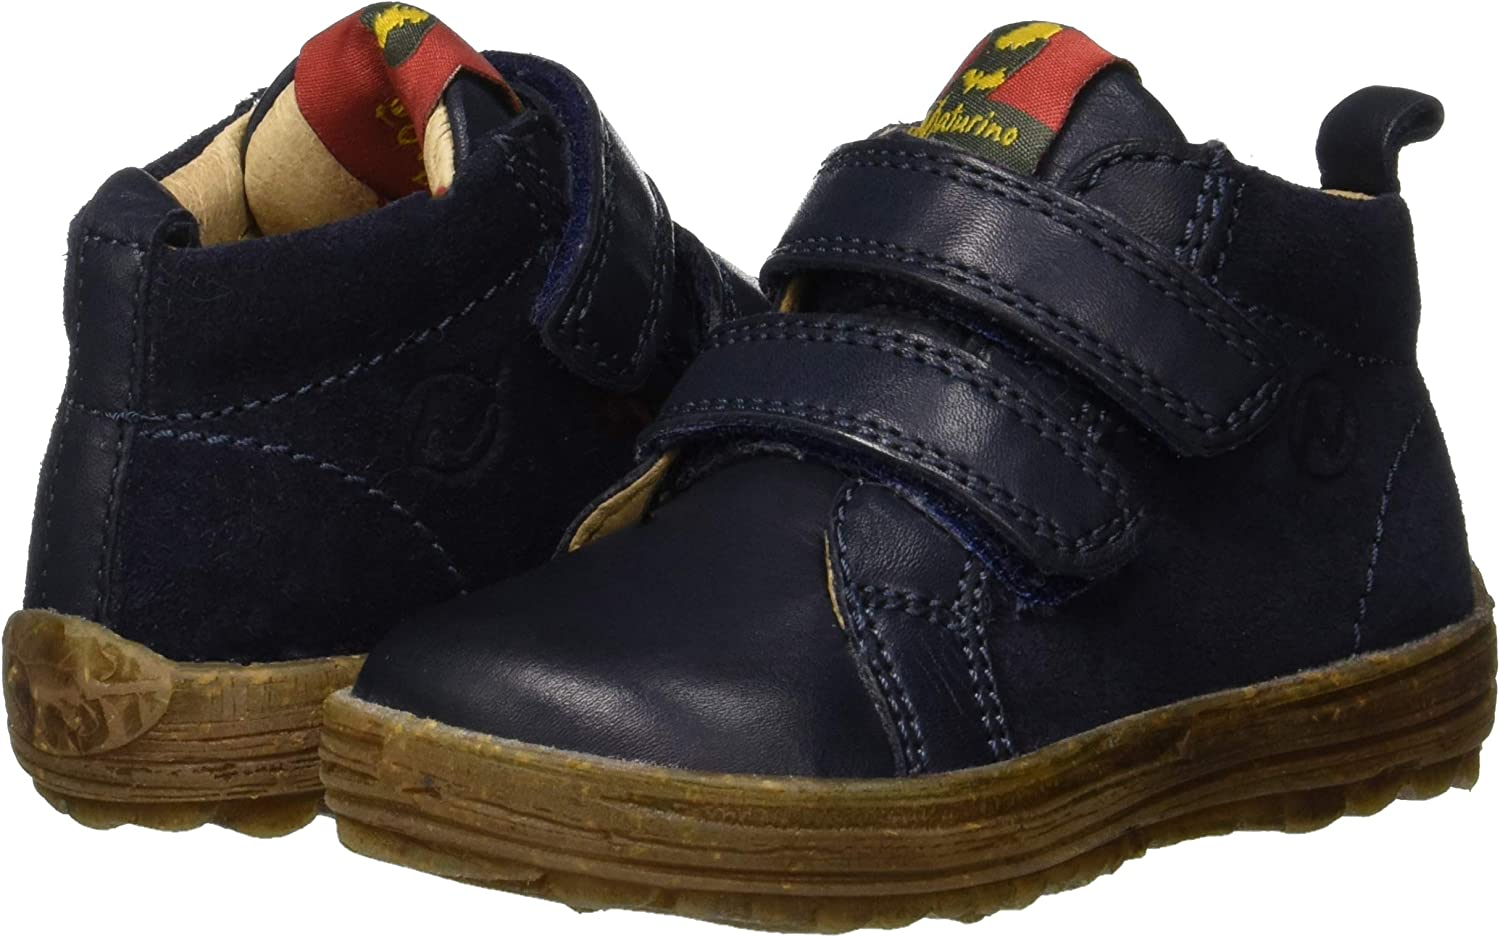 Naturino Boys Cloud Vl Low-Top Sneakers